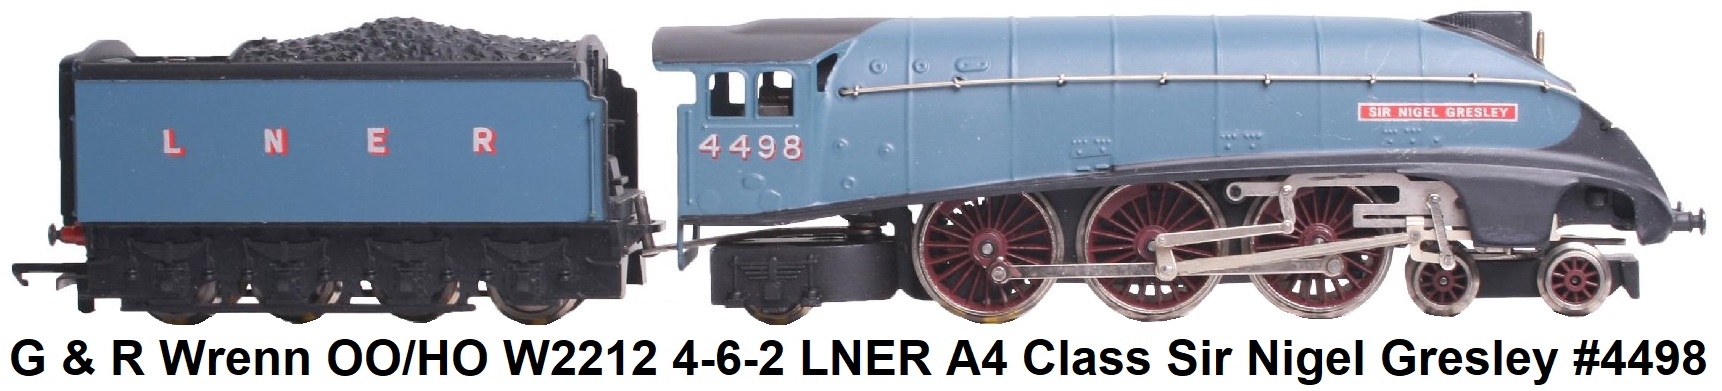 G & R Wrenn Railways OO/HO gauge W2212 4-6-2 LNER blue A4 Class Locomotive and Tender Sir Nigel Gresley